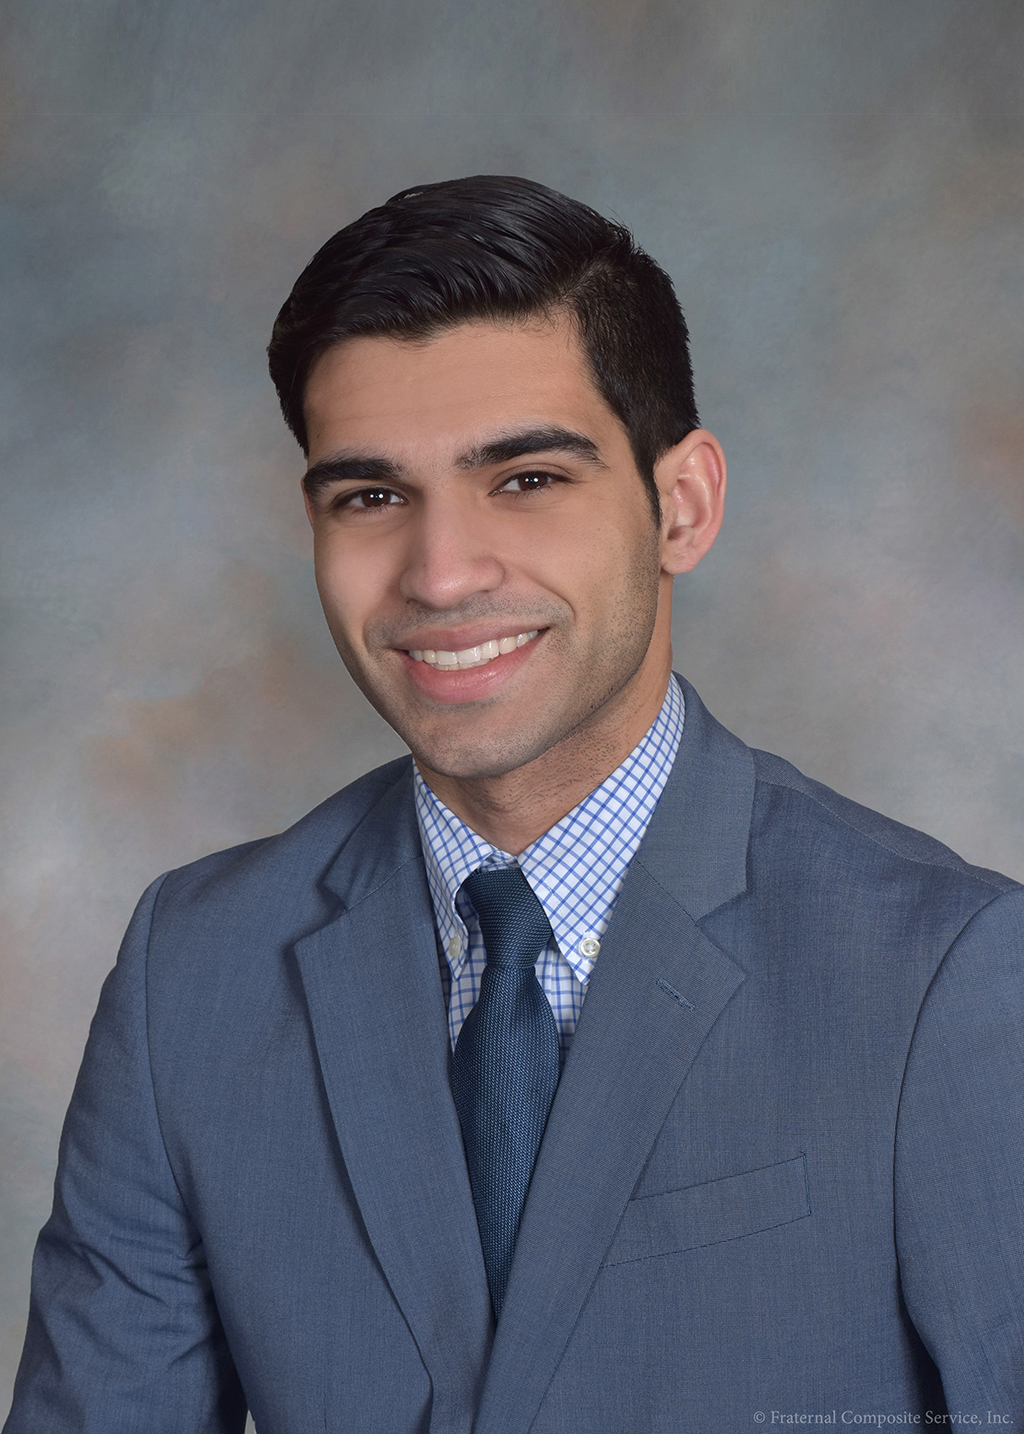 Ammar Lone  | Class of 2021   Hometown:  Cleveland, OH   Majoring in  Wharton: Statistics and Healthcare Management   Bank of America Merrill Lynch : Wealth Management Intern   Groups & Societies:  The Social Impact Consulting Group, Wharton Investment and Trading Group, Muslim Student Associations, Turner Social Impact Society   Interests:  NBA, Podcasts, Mexican Food, Kashmiri Rugs